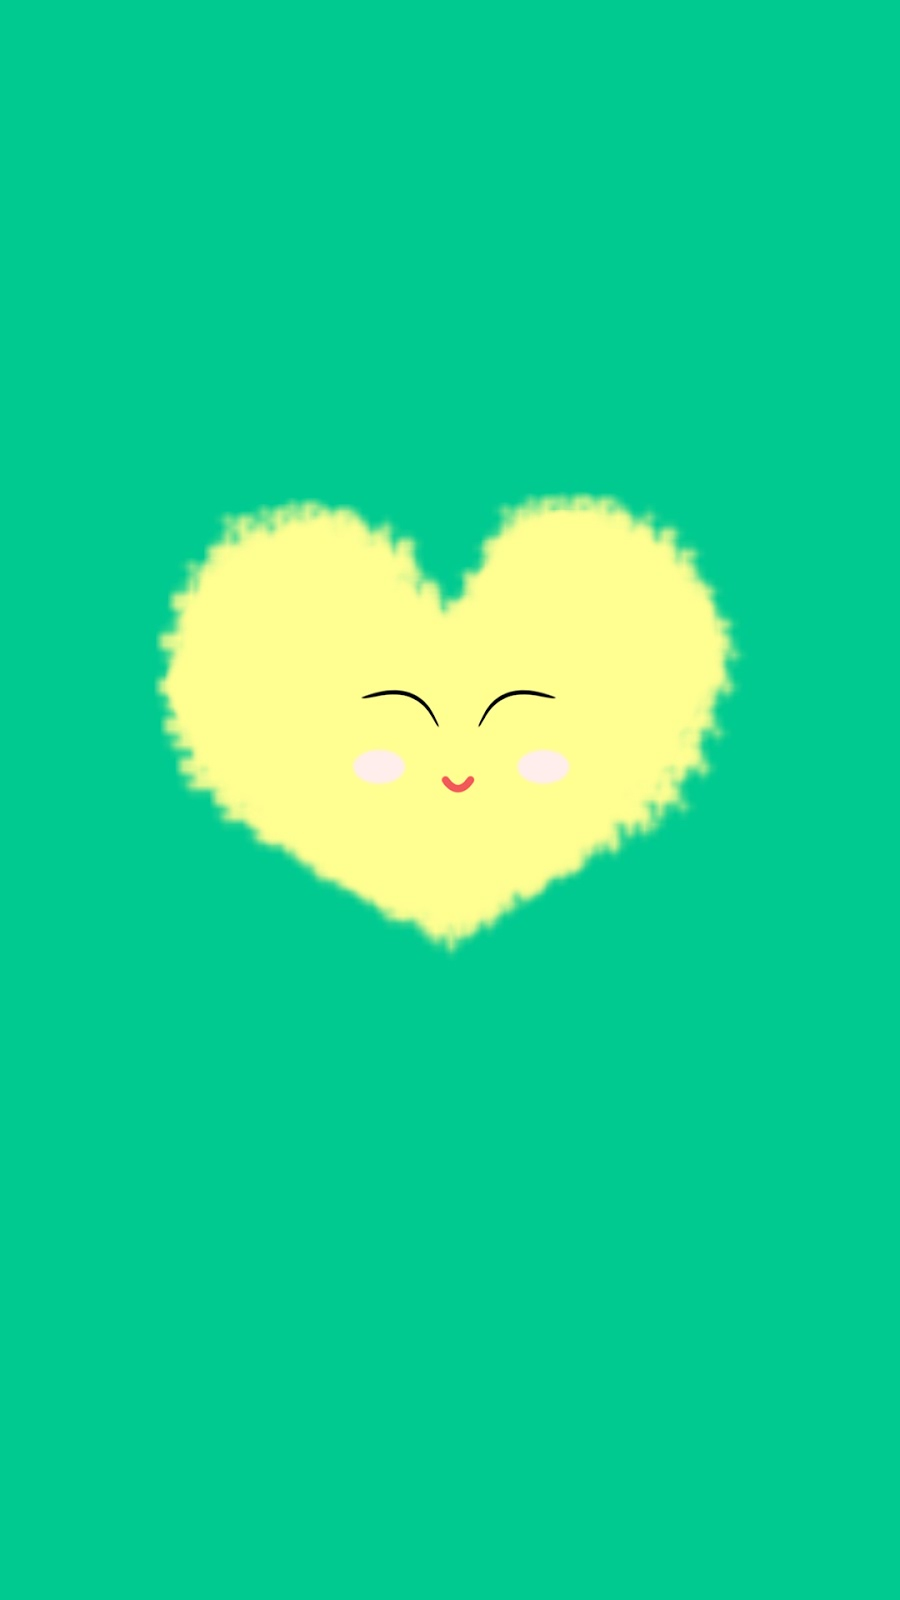 Wallpaper iphone cute love - Cute Love Wallpaper Iphone 6s Click Here To Download